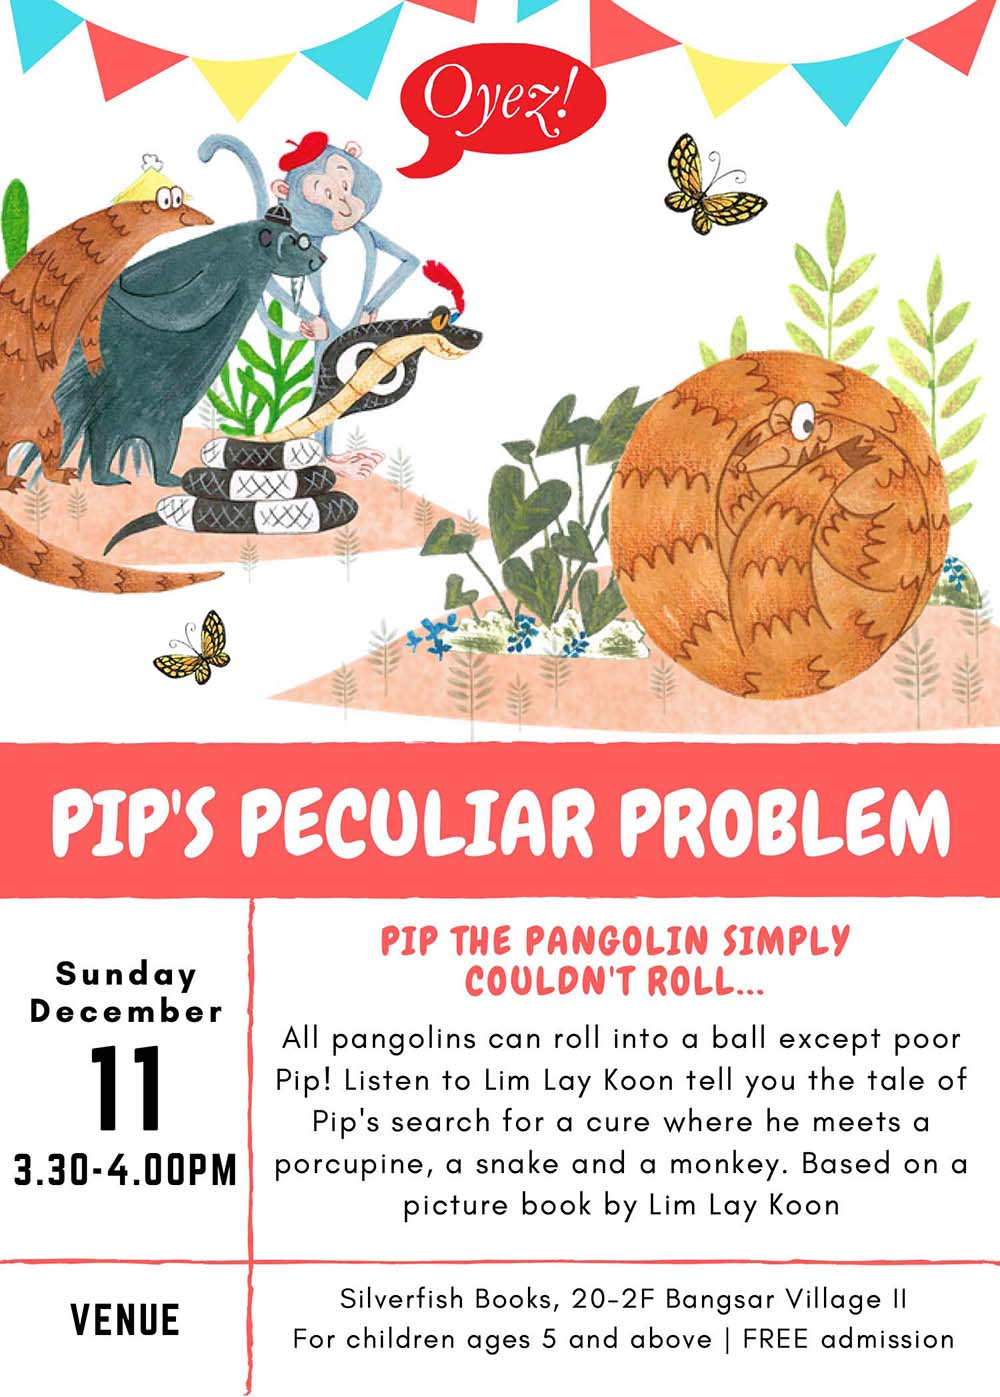 Pip's Peculiar Problem - storytime based on children's picture book by Lim Lay Koon, published by Oyez!Books